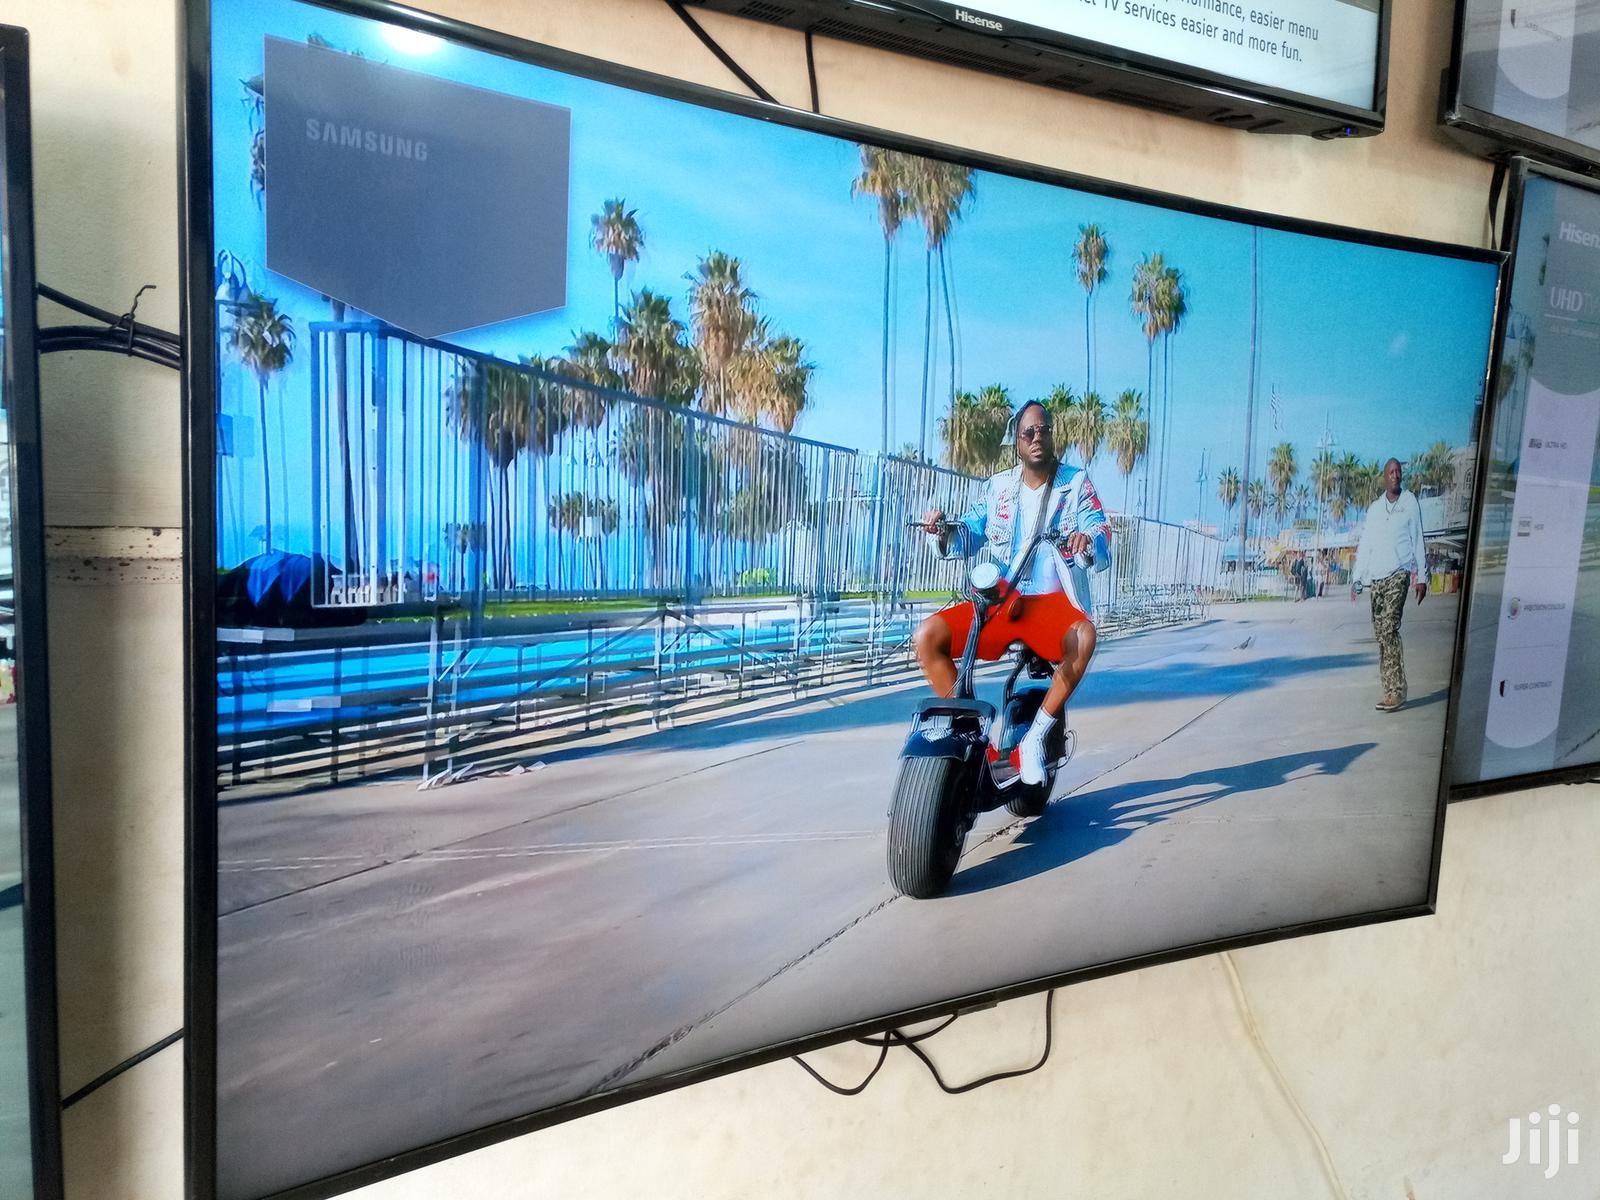 Samsung Smart UHD Curved TV 55 Inches